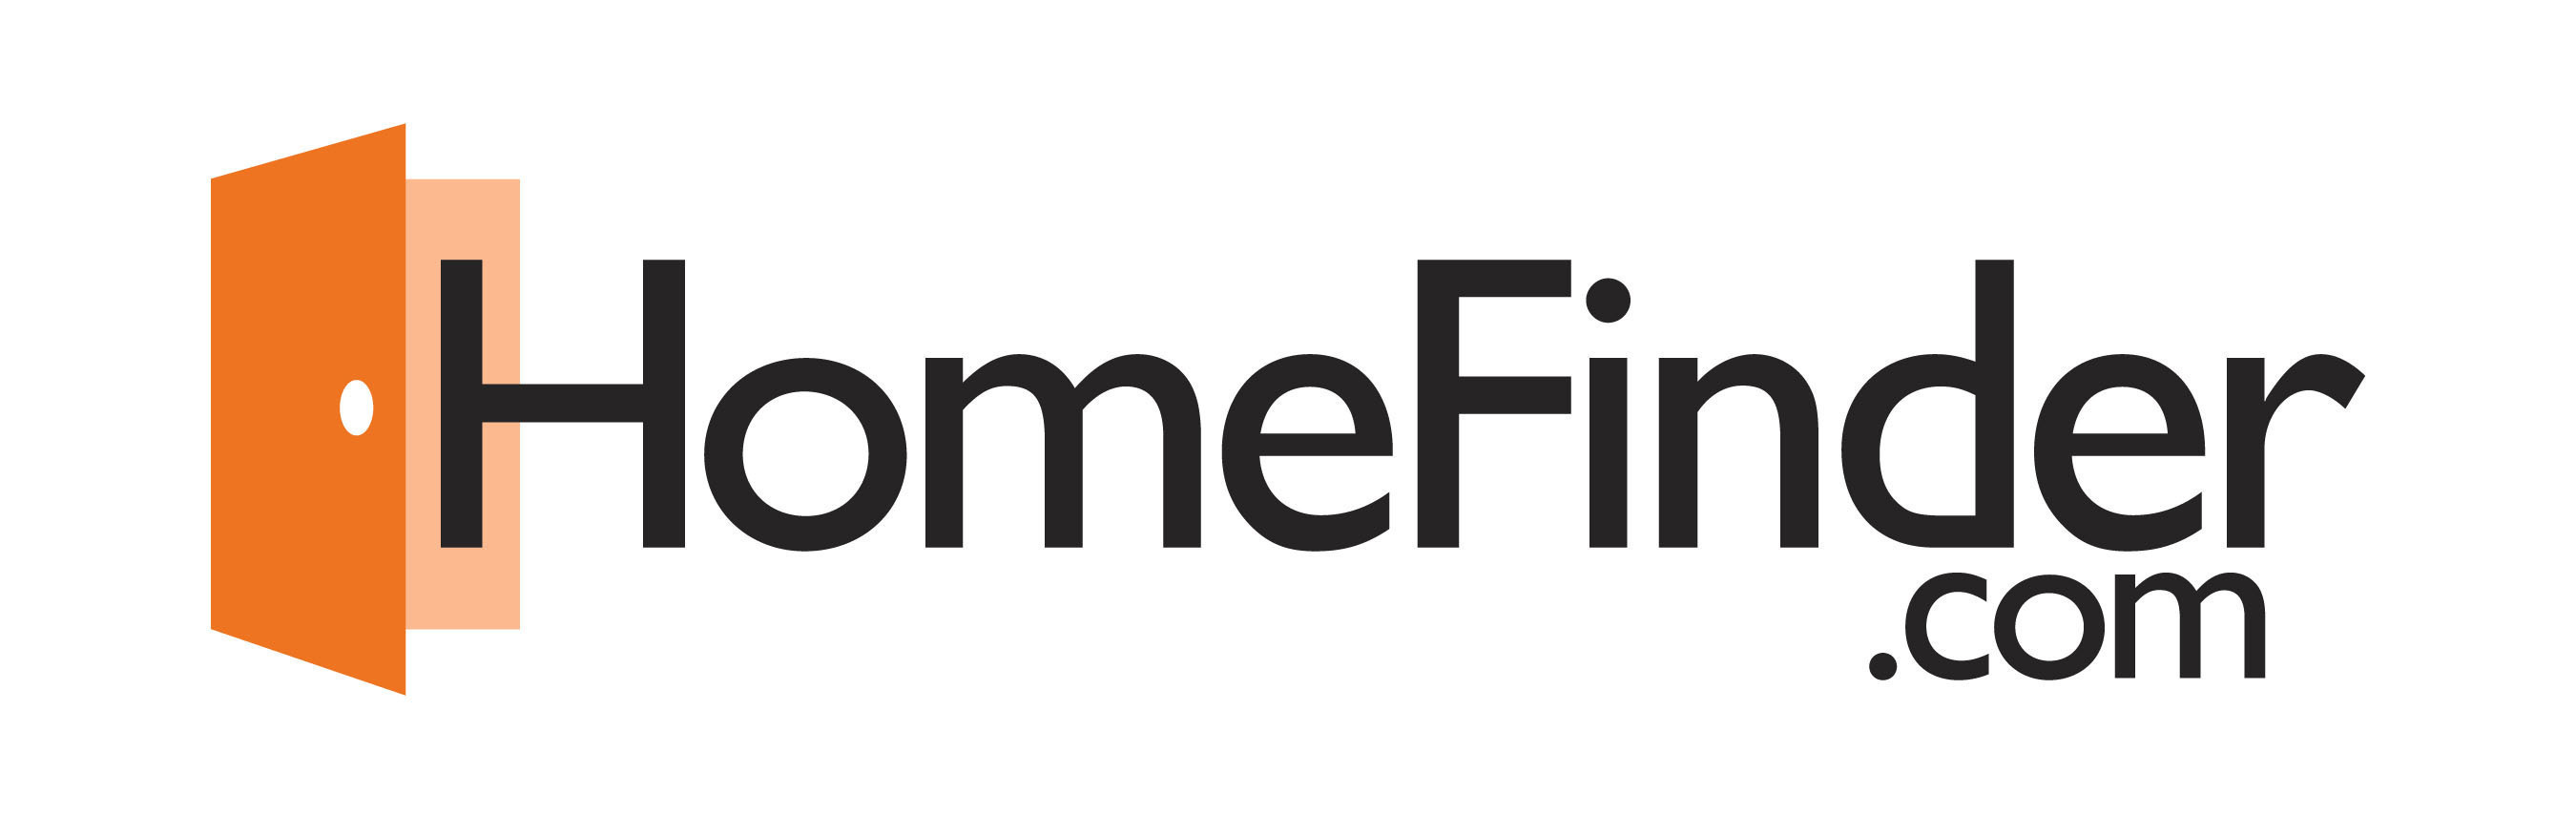 HomeFinder.com Agent Transformation Sweepstakes Presented by PNC Mortgage Will Give Five Real Estate Agents the Chance to Reinvent Their Business with a Two-Night Busines